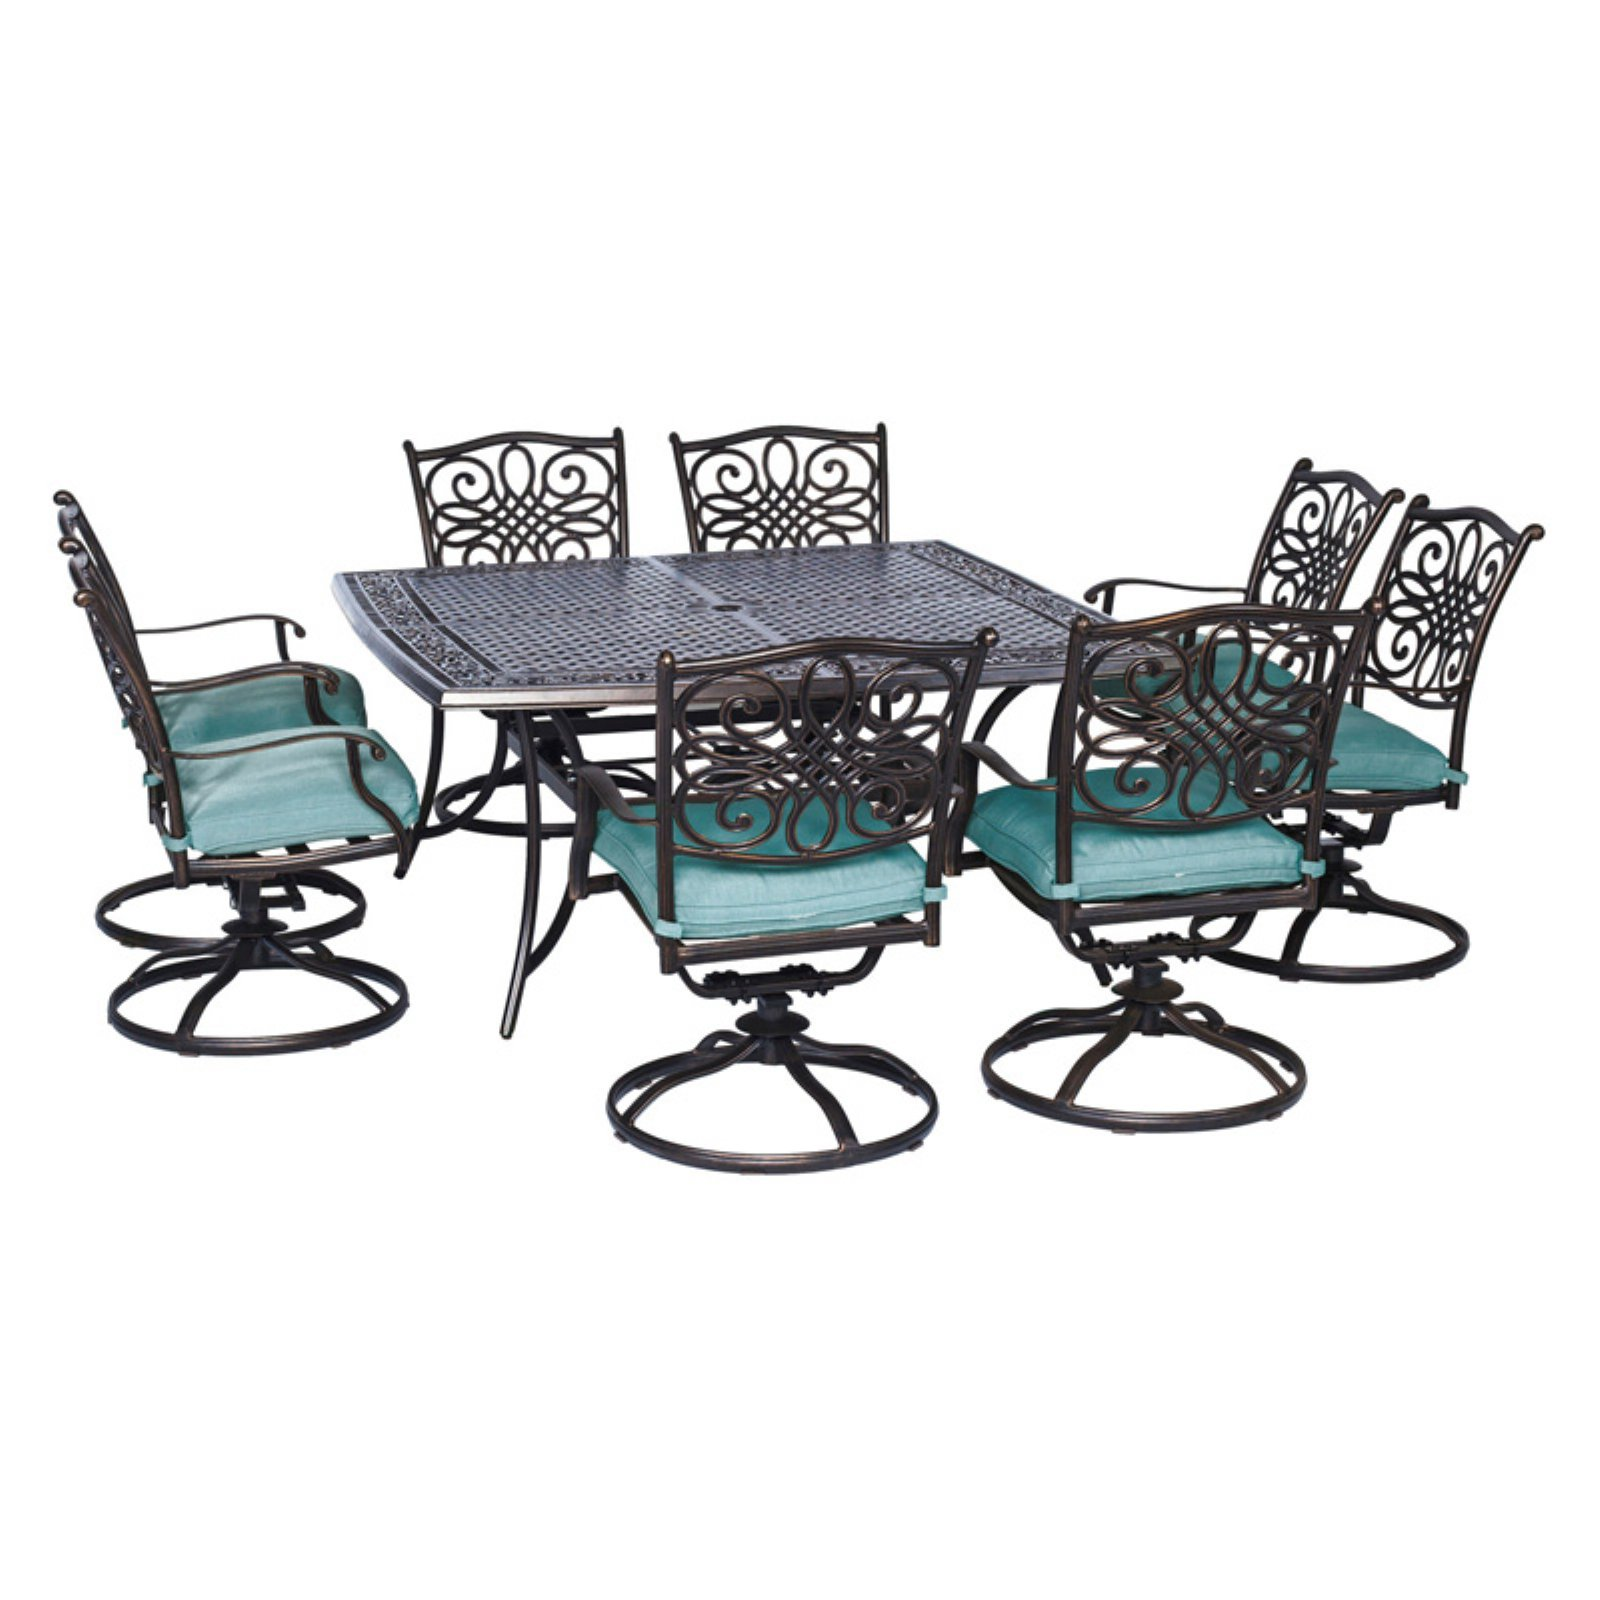 Hanover Outdoor Traditions 9-Piece Square Dining Set with 8 Swivel Rockers, Ocean Blue